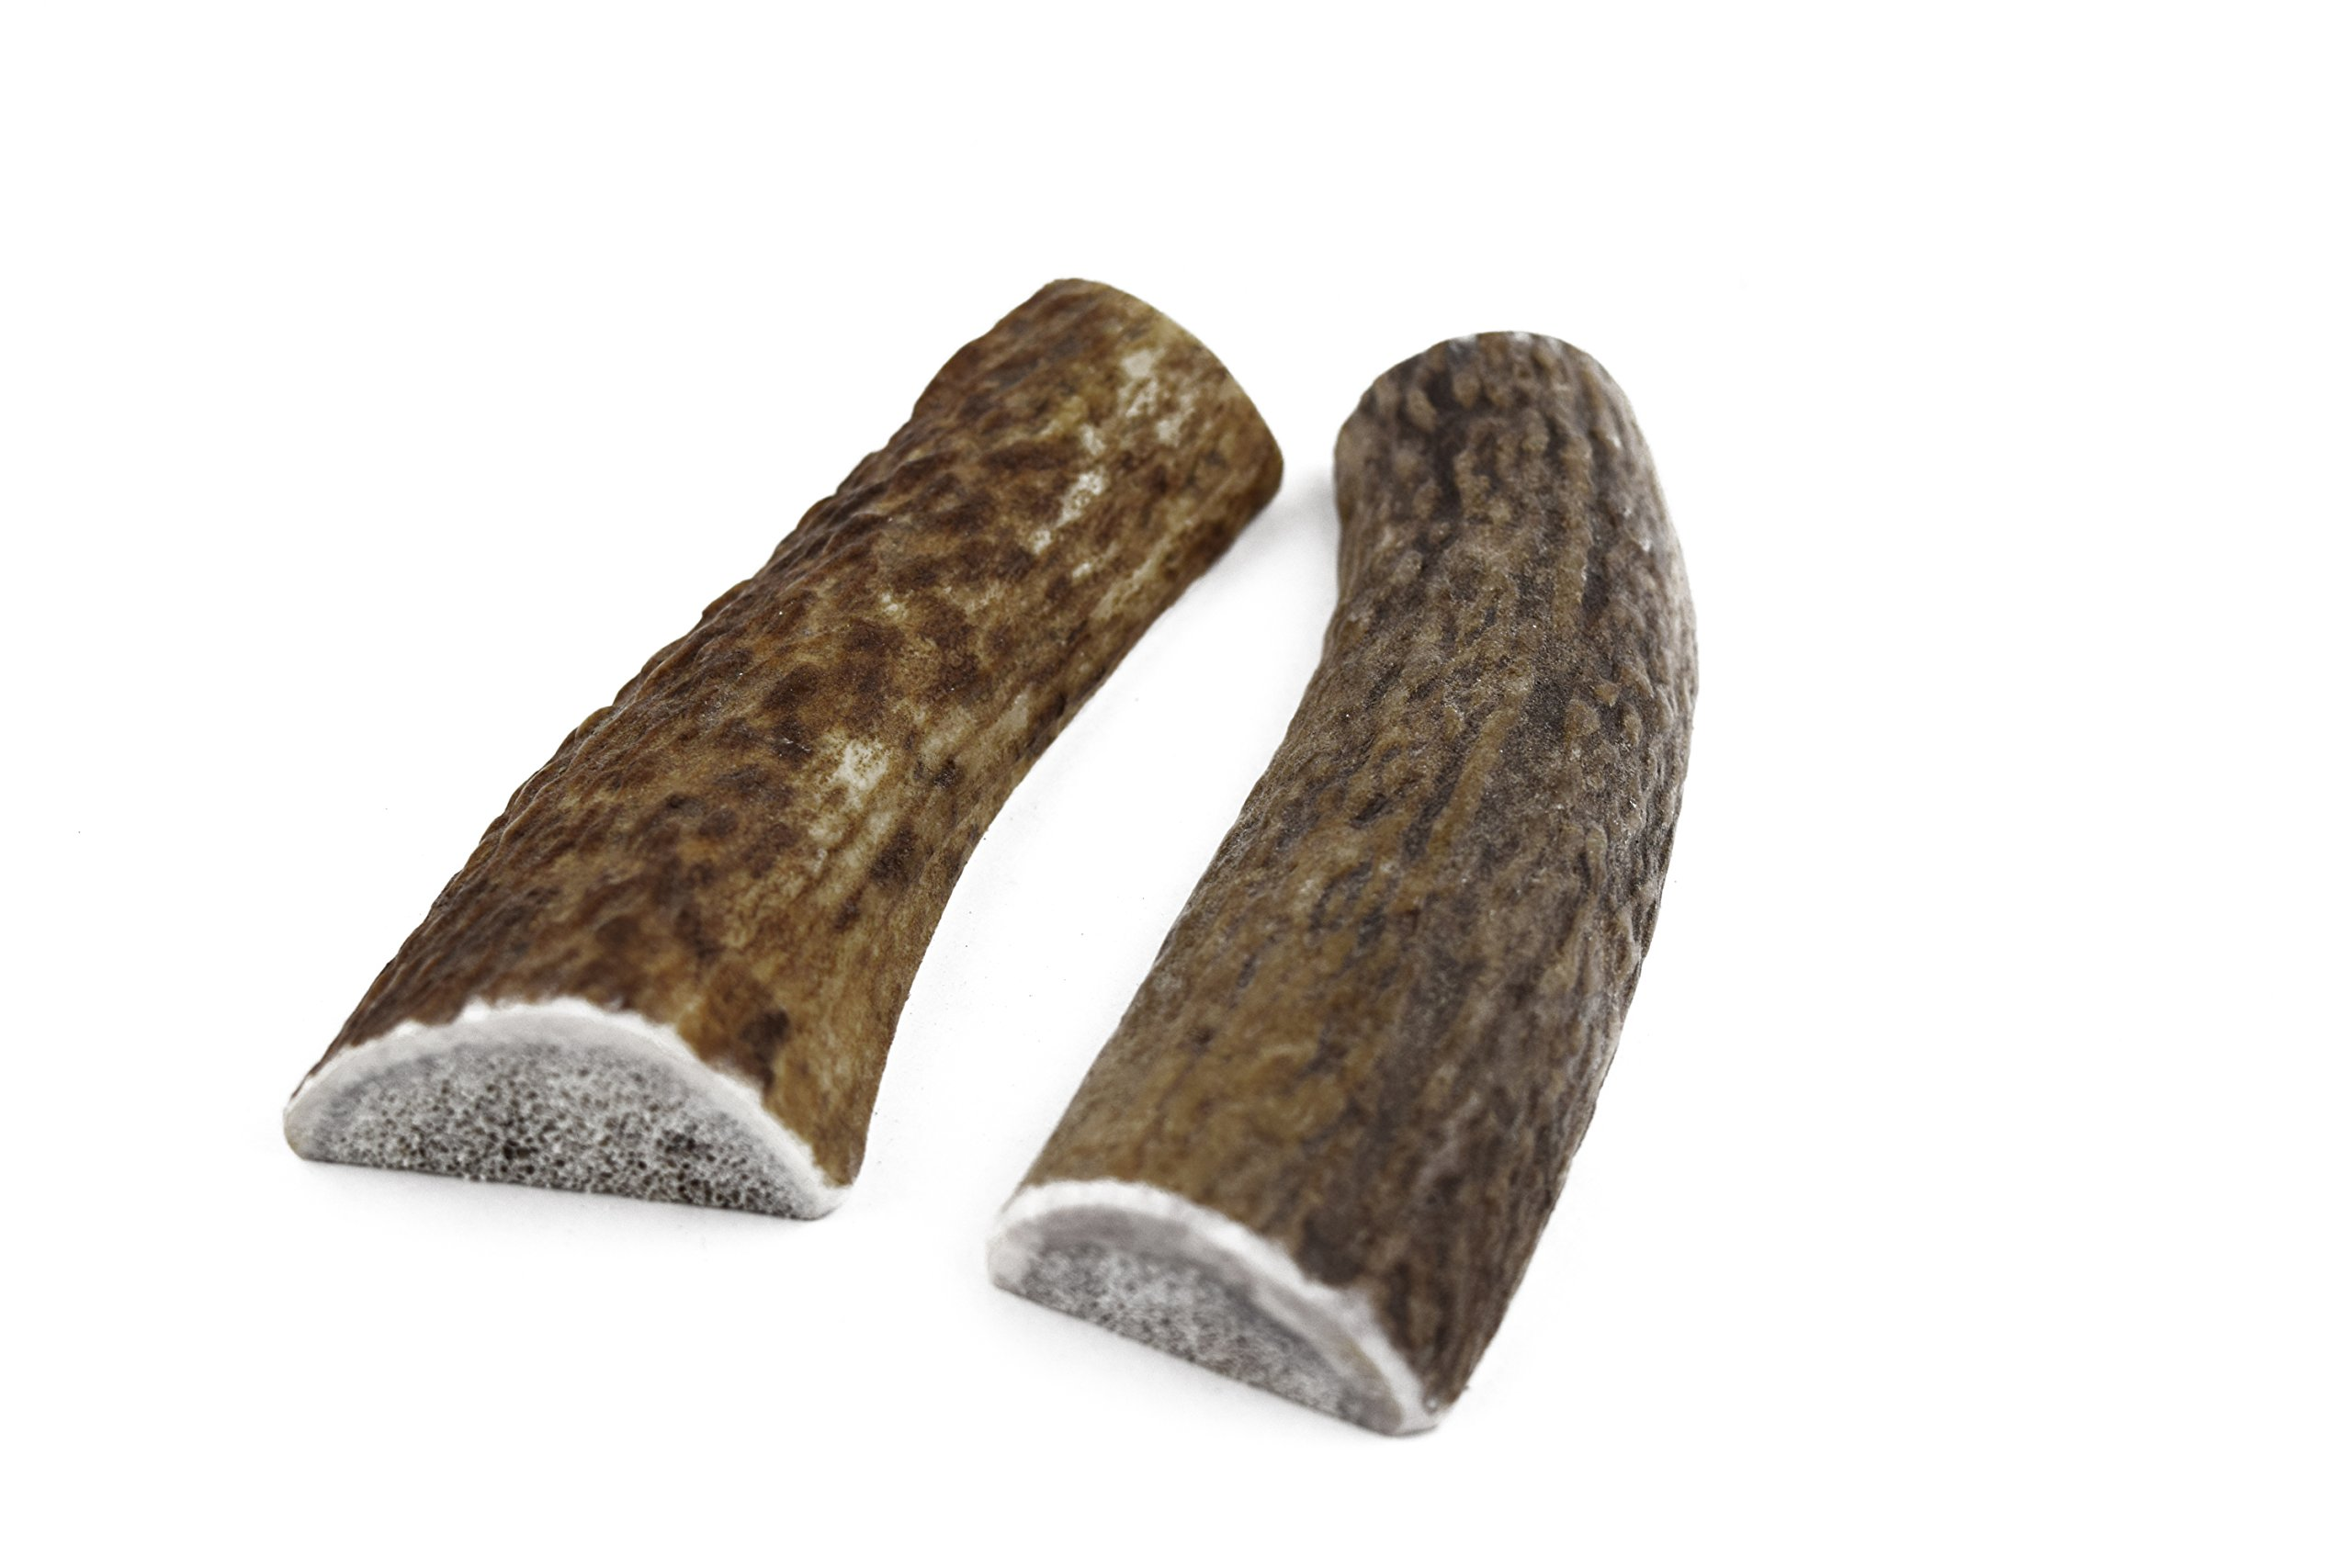 JimHodgesDogTraining Brand - Grade A Premium Quality Elk Antler Dog Chews - Small Split 2 Pack - Natural Alternative to Chew Toys, Bully Sticks, Bones, Rawhides, Himalayan, Jerky Treats - Made in USA by JimHodgesDogTraining - Grade A Antler Dog Chews (Image #5)